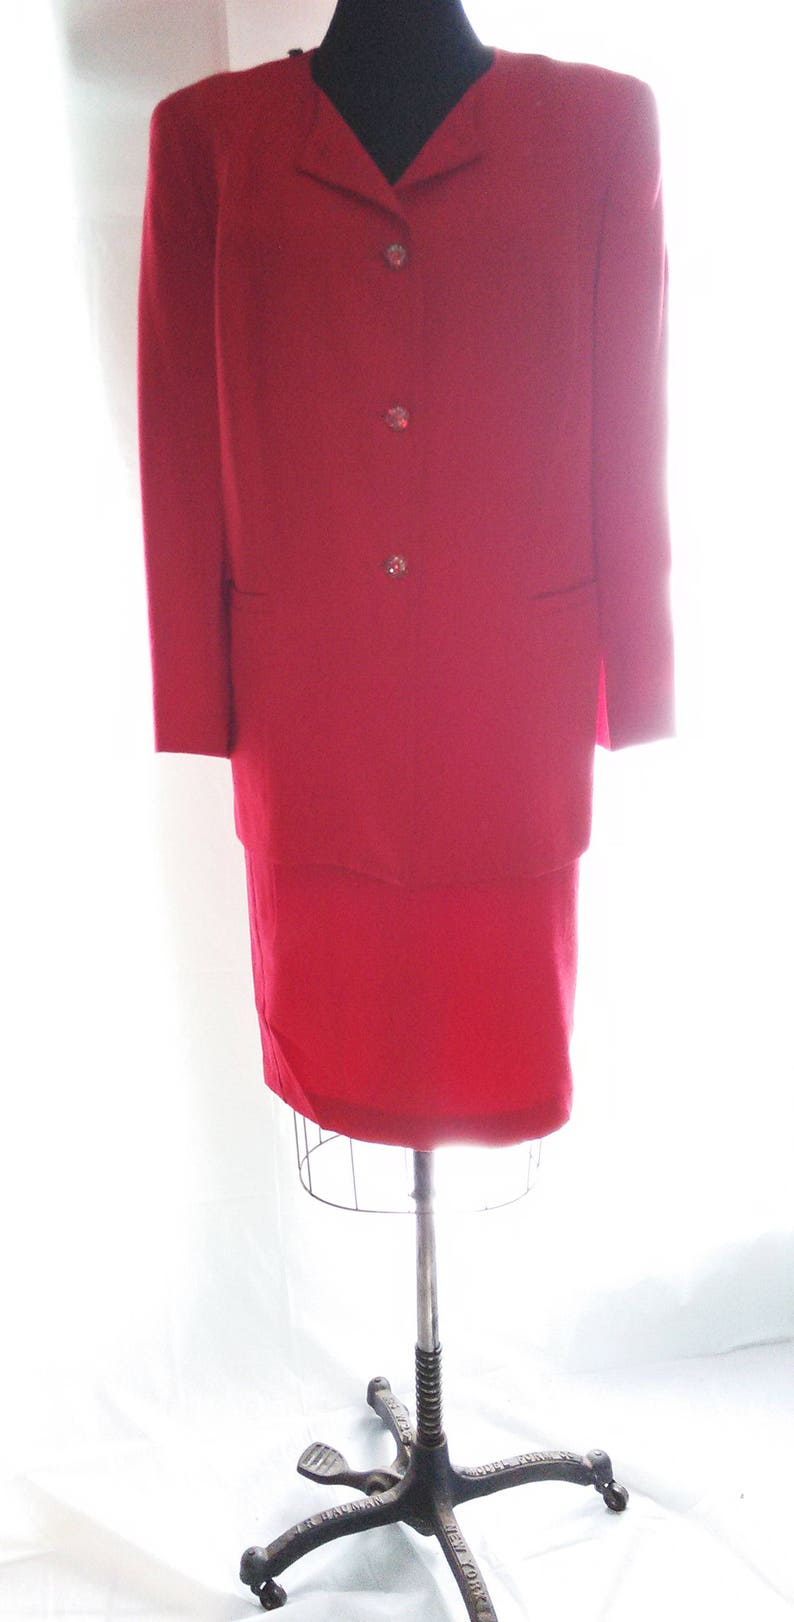 dd5c0e2f8e2 BIG HOLIDAY SALE-80s Vintage Red Wool Suit-Holiday-Ruby